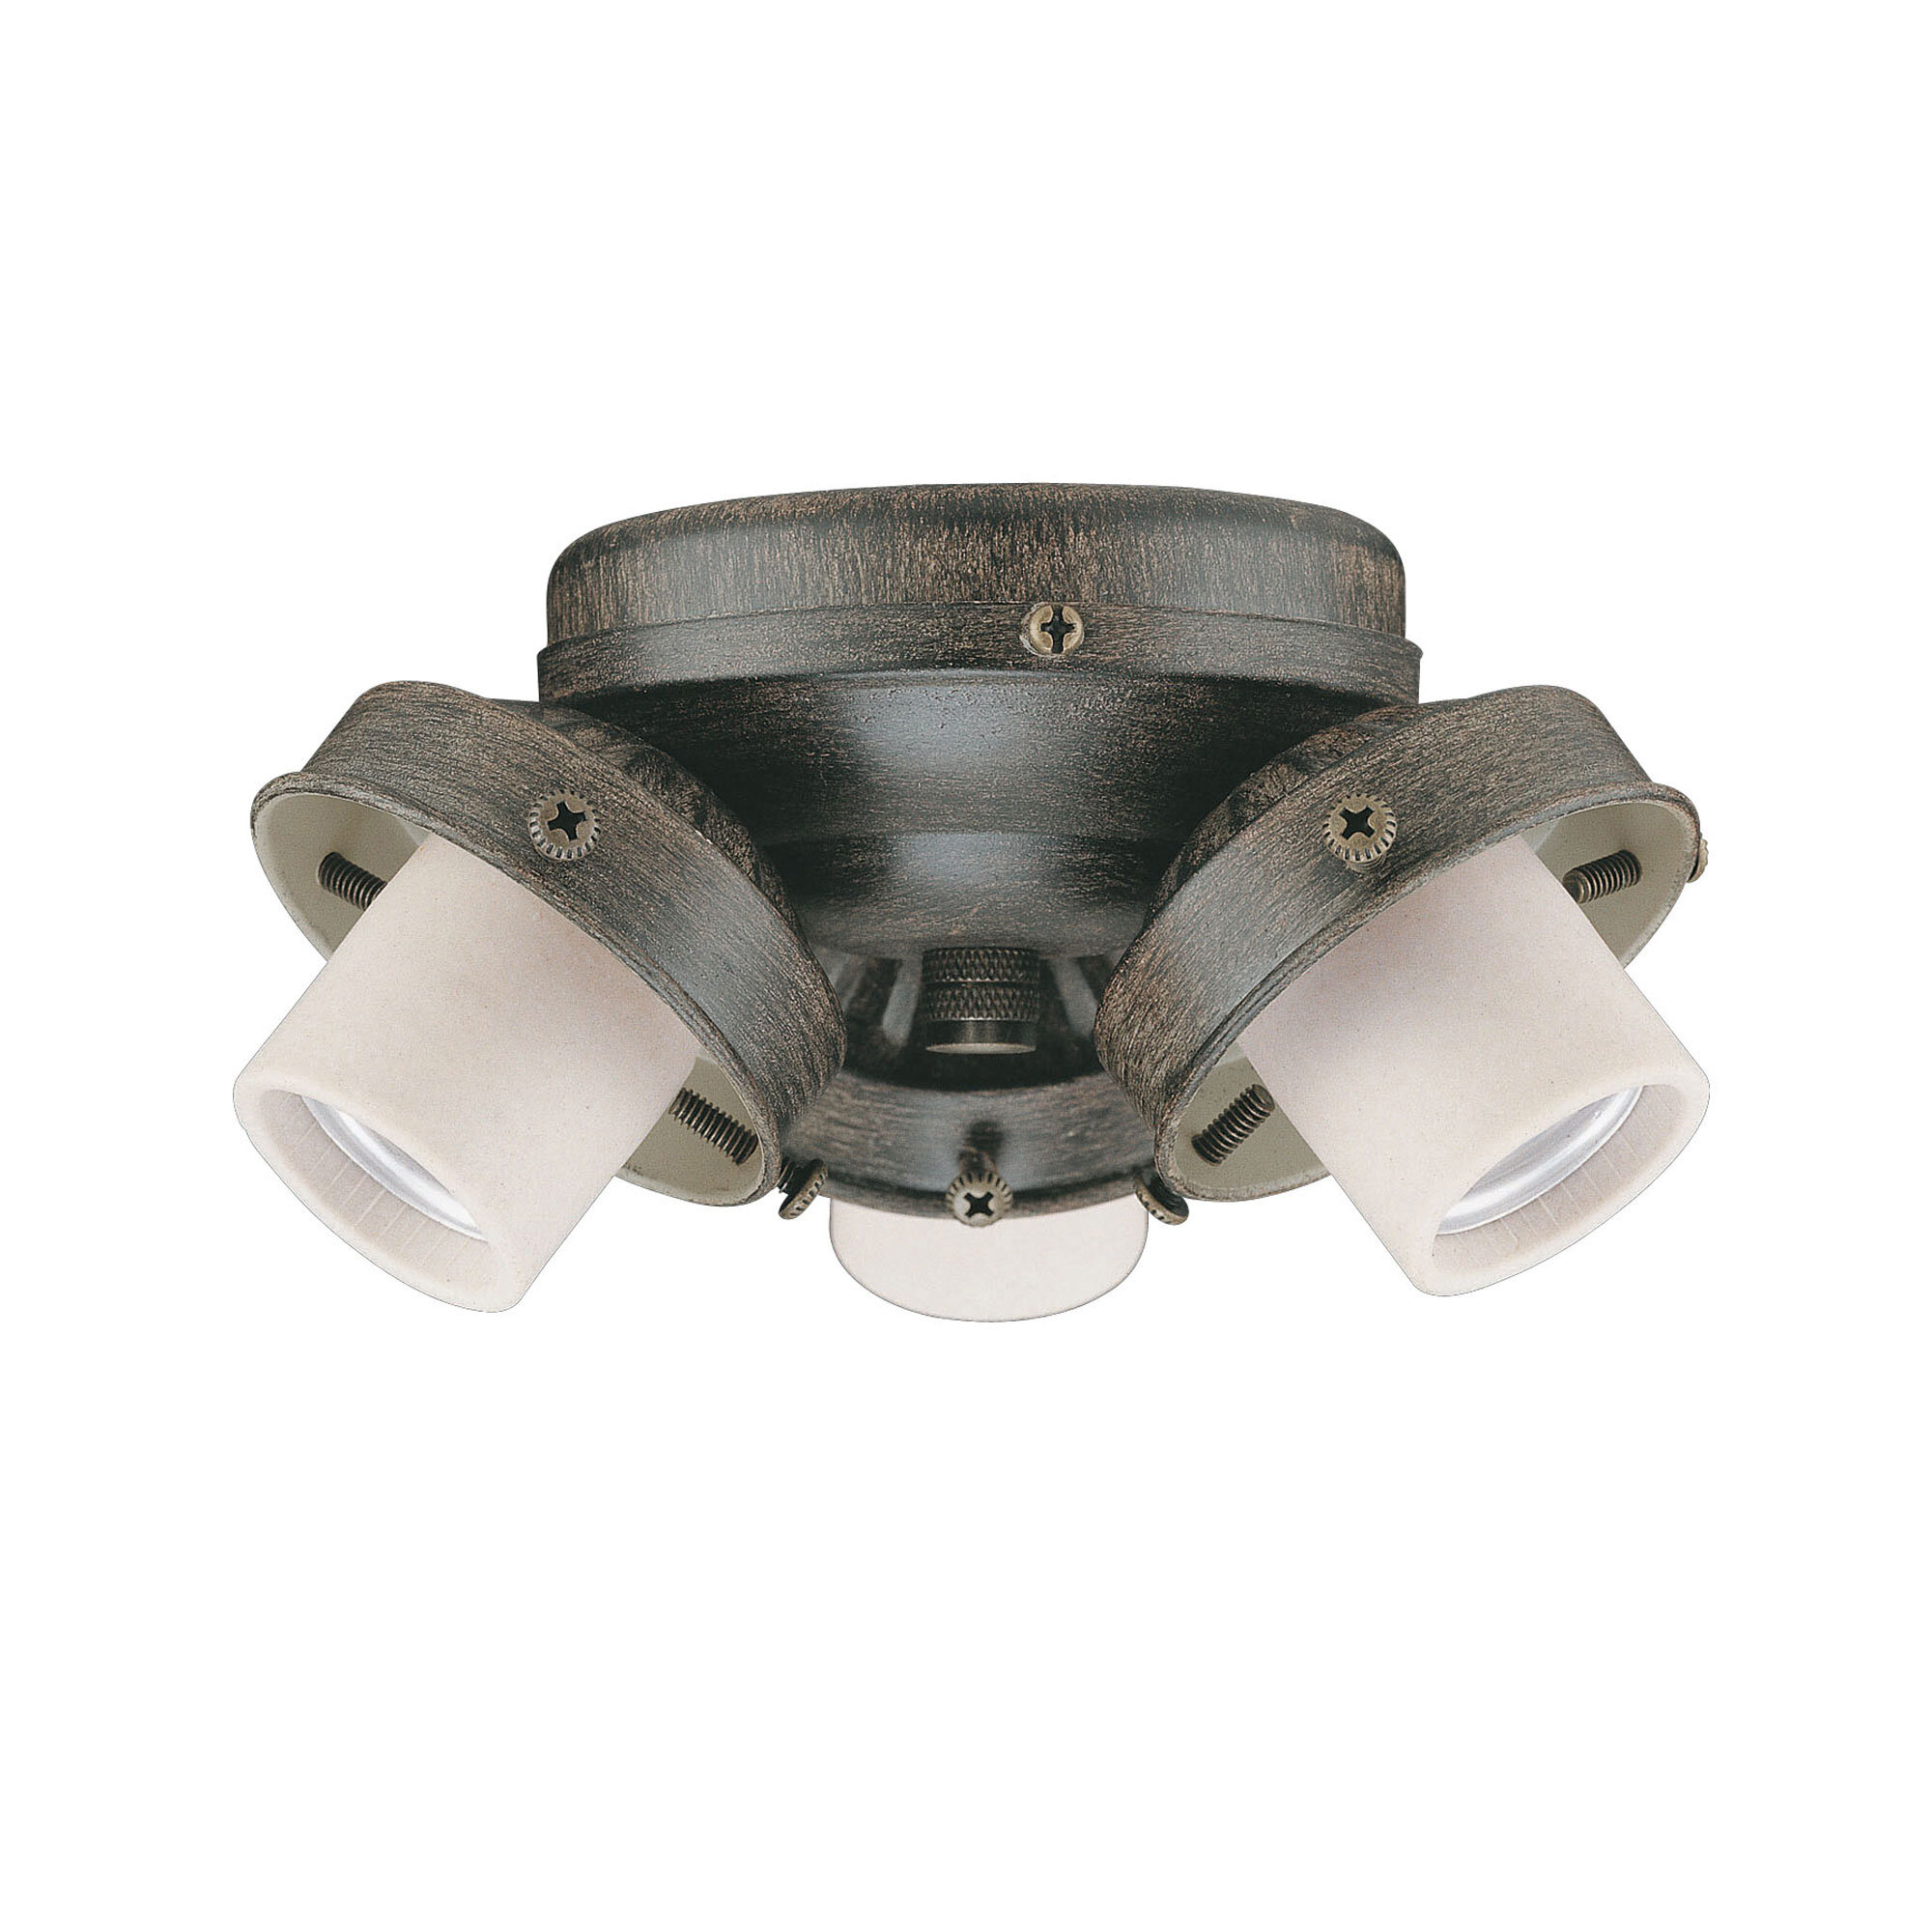 Concord Fans Turtle 3 Light Branched Ceiling Fan Light Kit